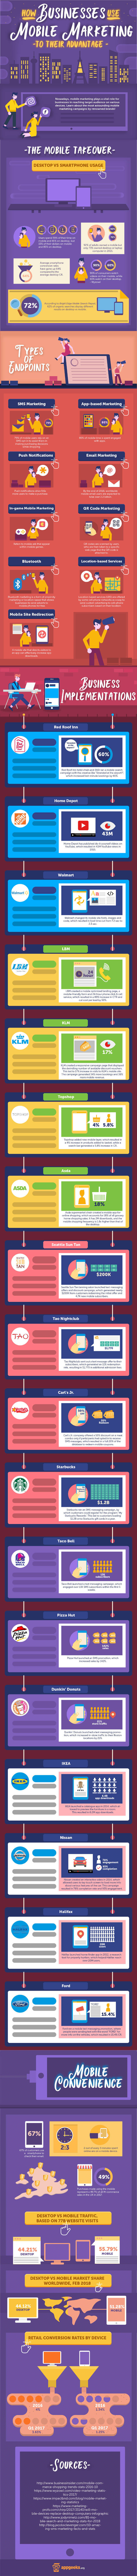 How Businesses Use Mobile Marketing To Their Advantage [infographic]